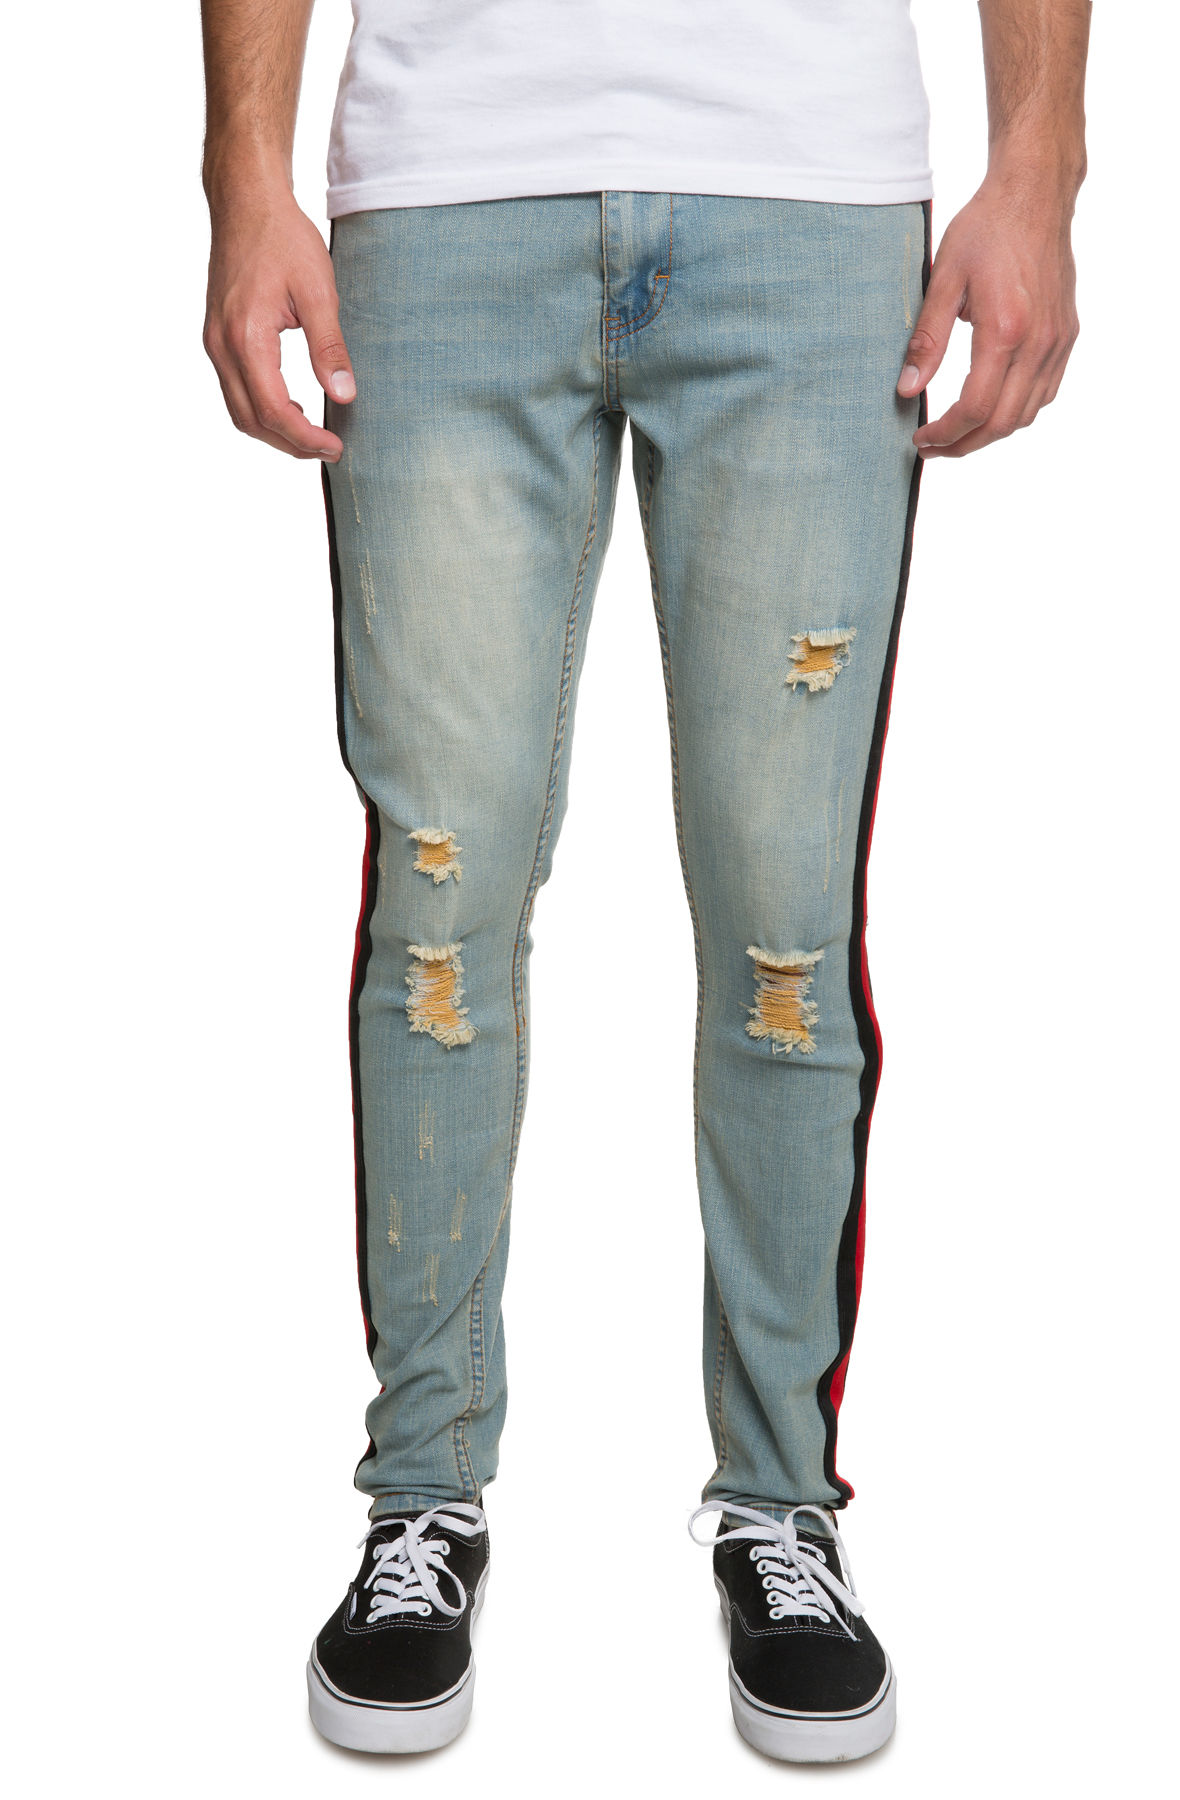 Image of The ''Double Helix'' Jeans in Earth Tone